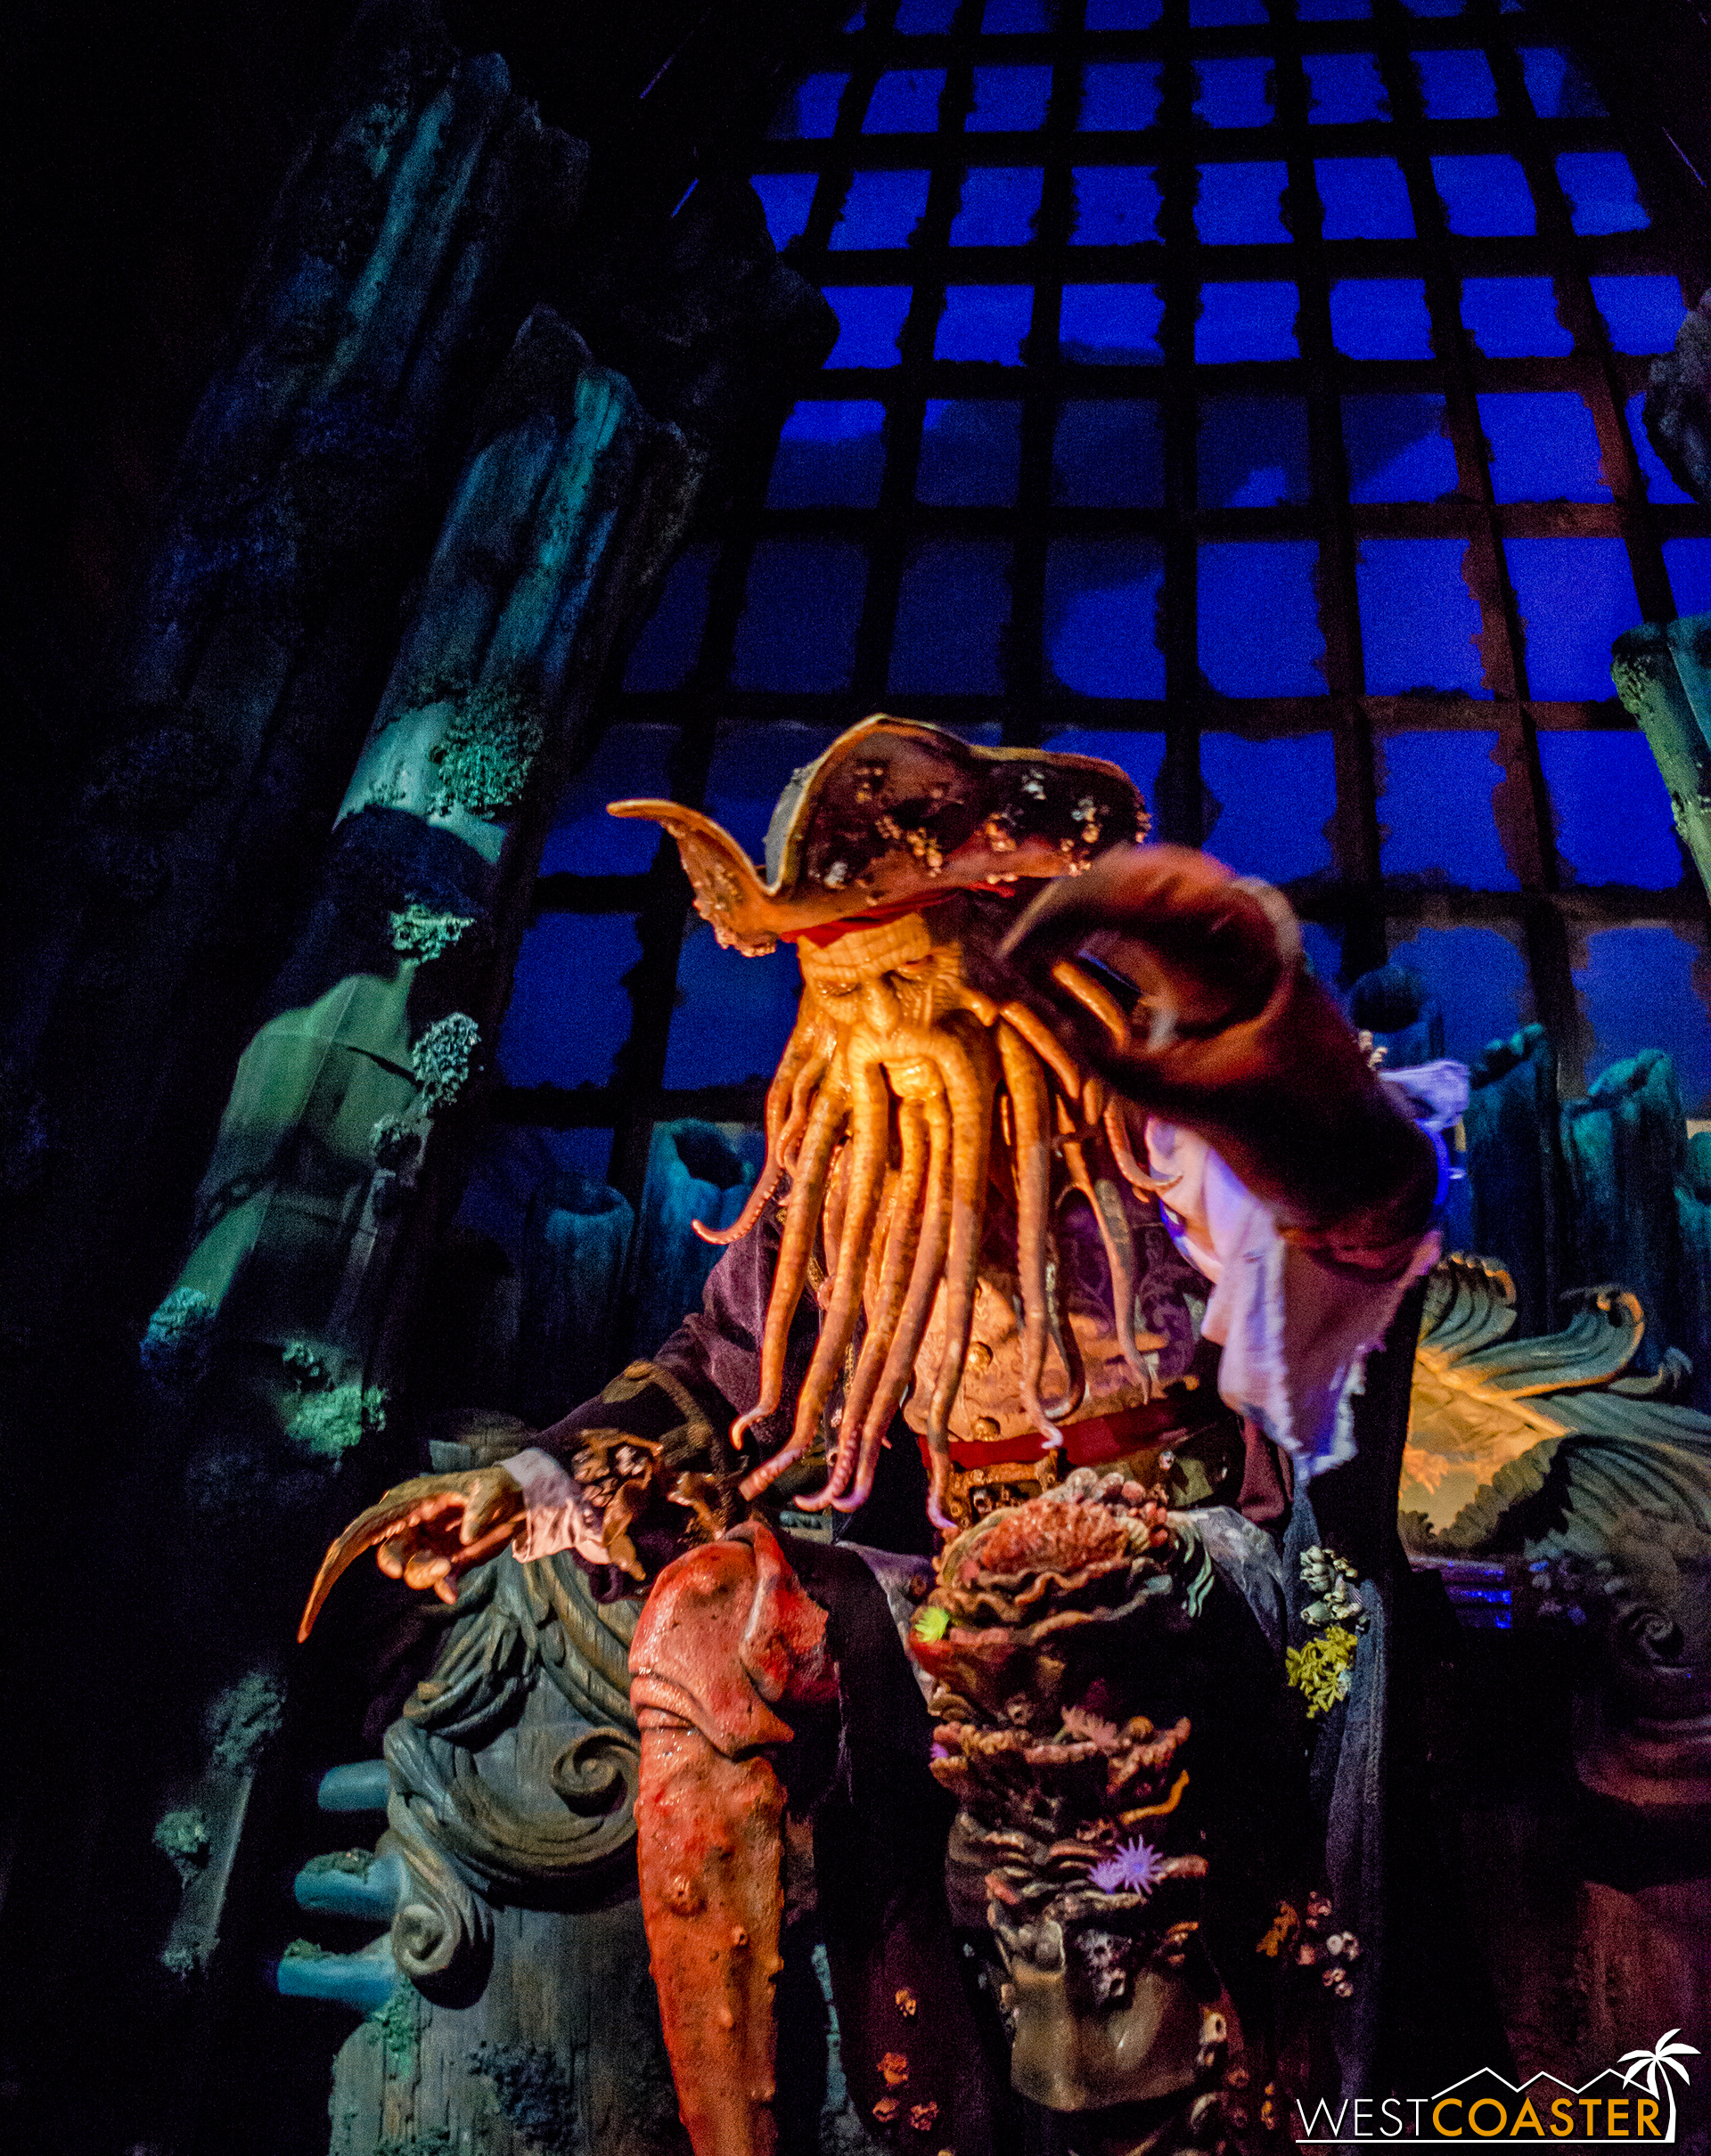 Davy Jones gives a warning on Pirates of the Caribbean: Battle for the Sunken Treasure.